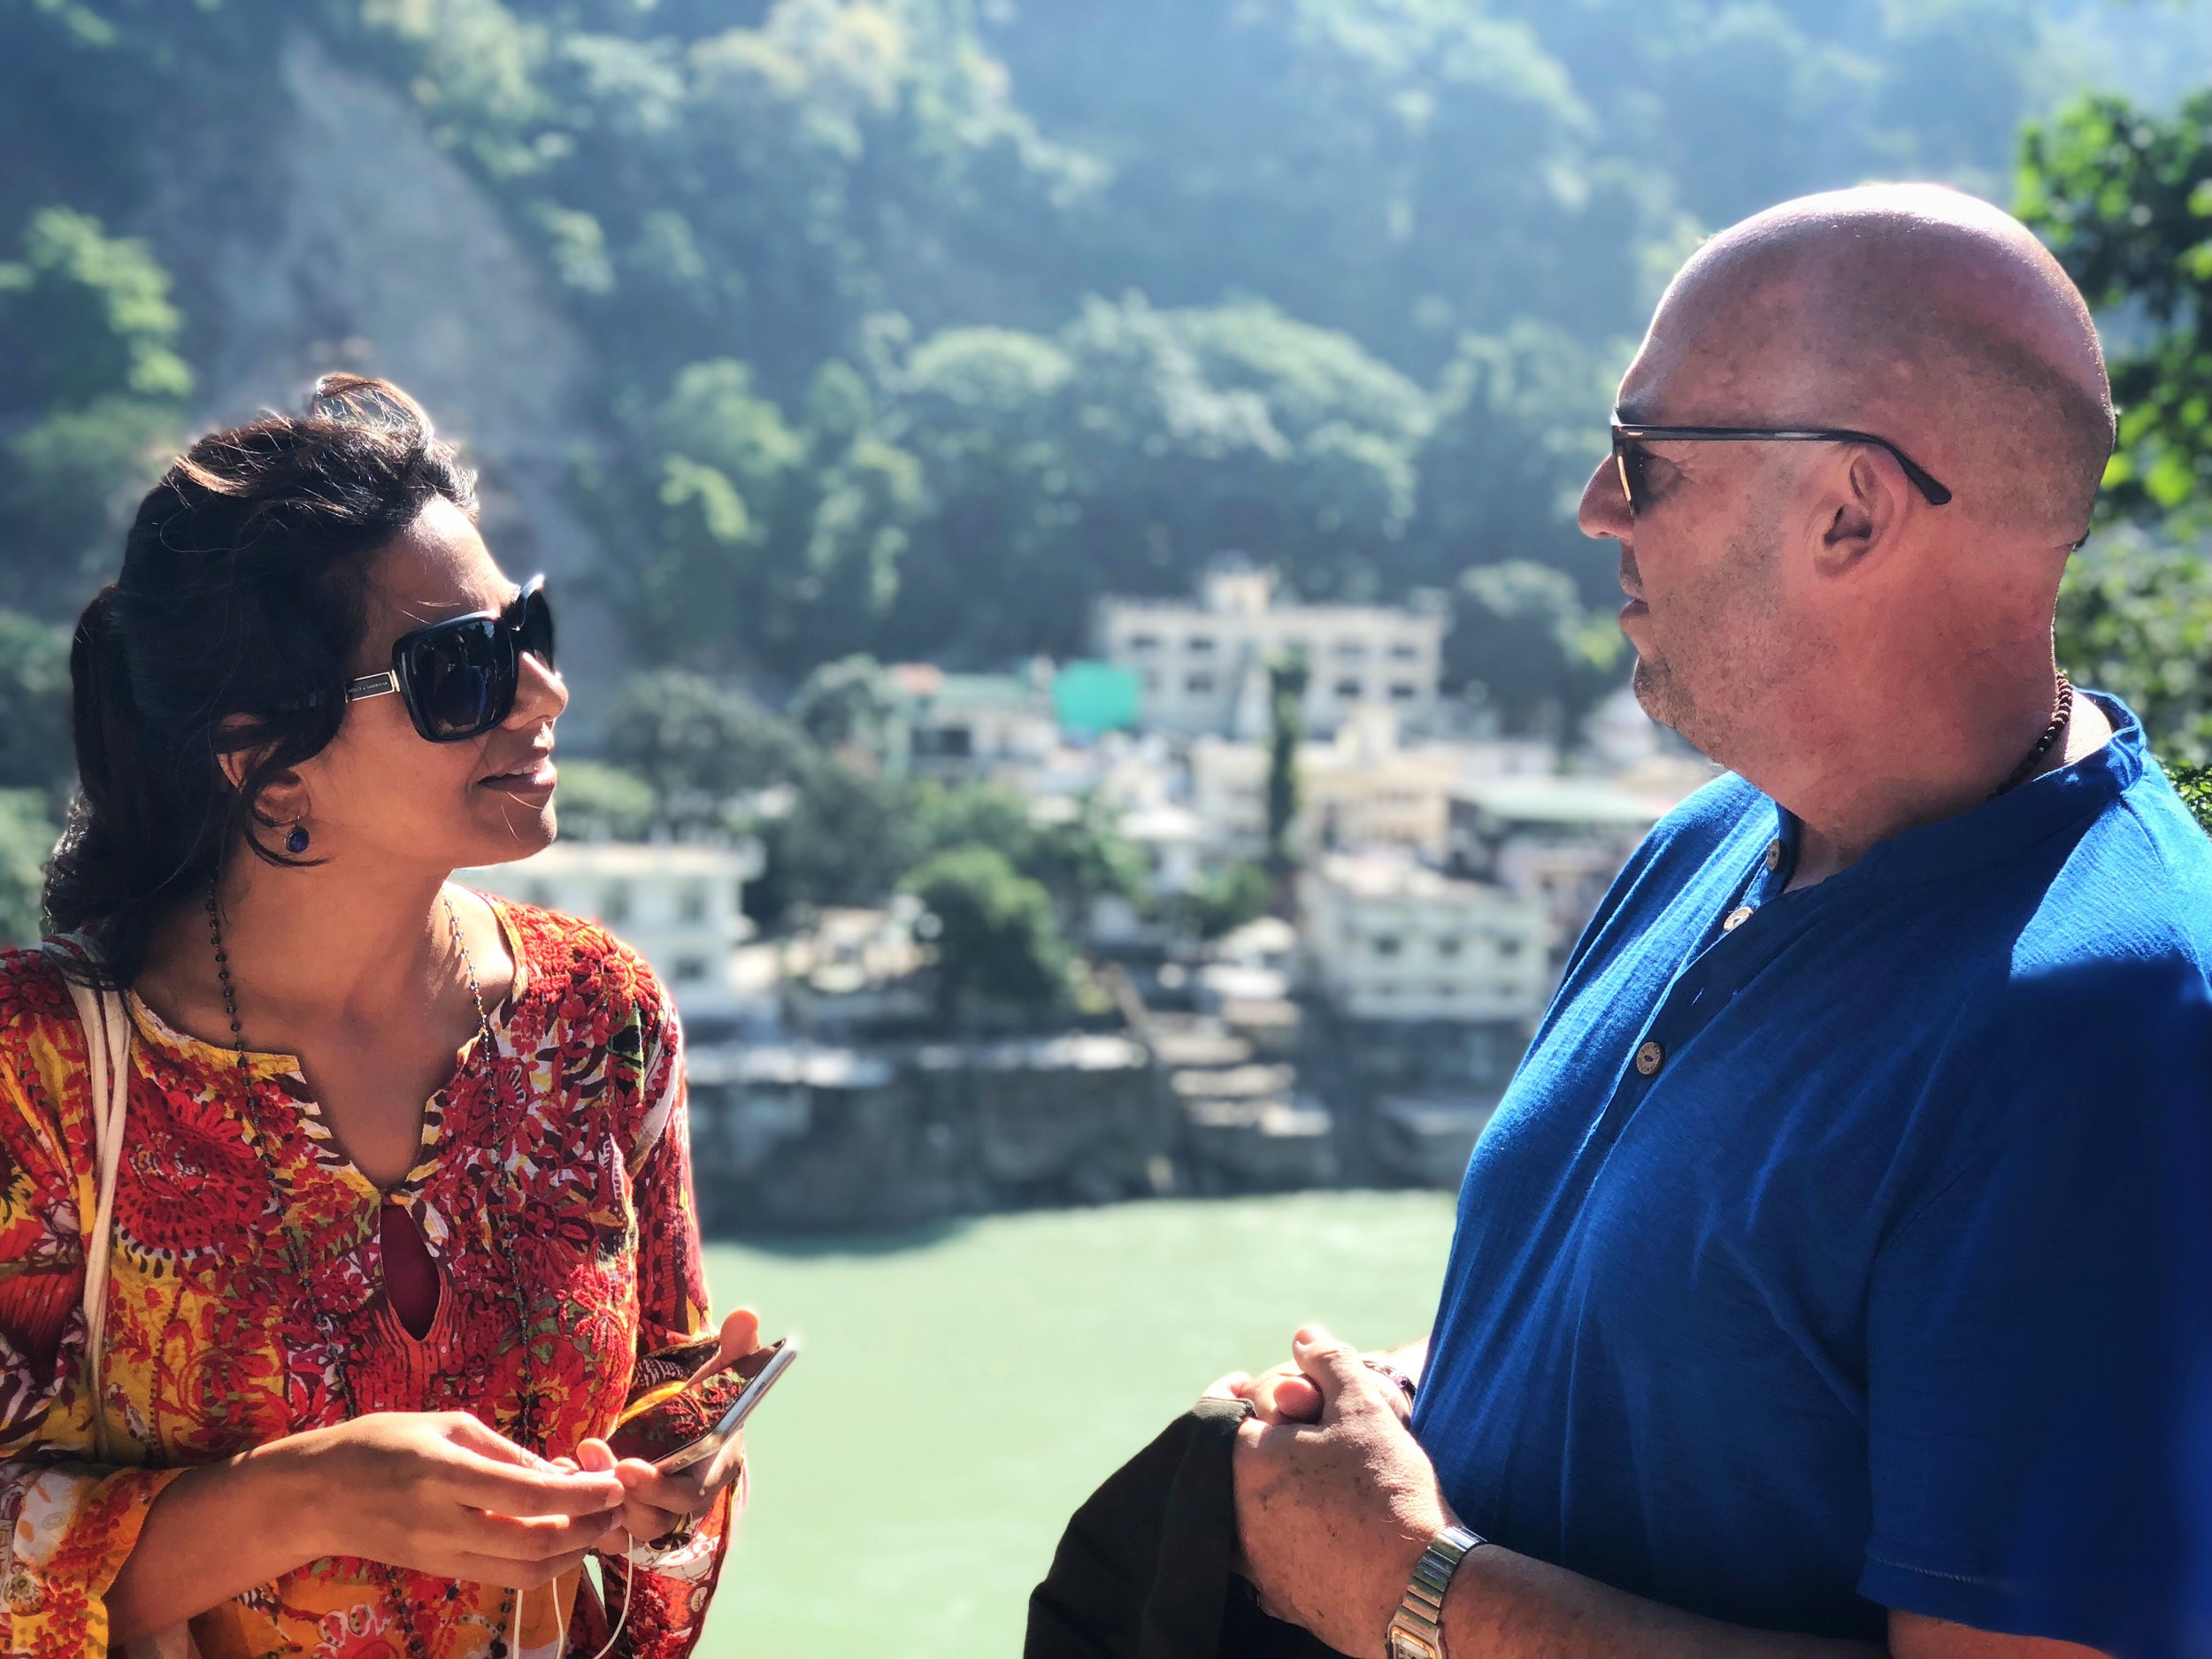 Scenes from the Ganges River